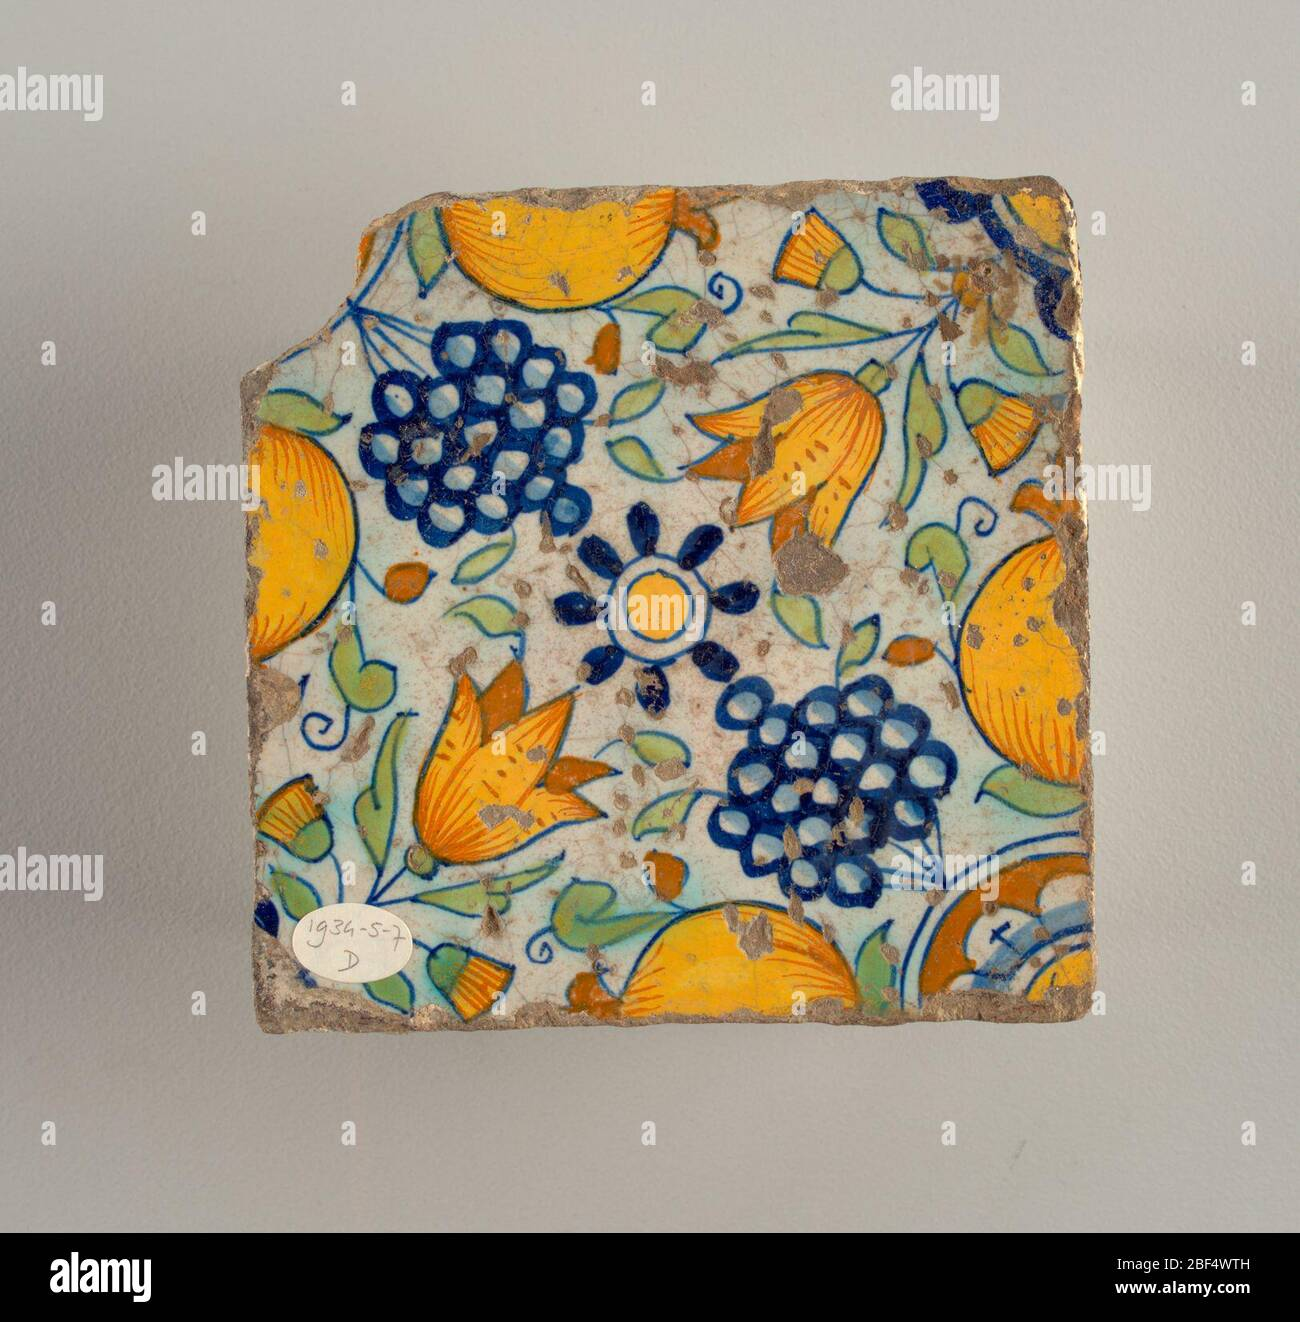 https www alamy com four tile two tiles each of a similar design in blue green and neutral yellow with fleurs de lis at four corners leaves and two small bunches of grapes in center of tiles a and b a pomegranate of tiles c and d a large bunch of grapes image353535297 html